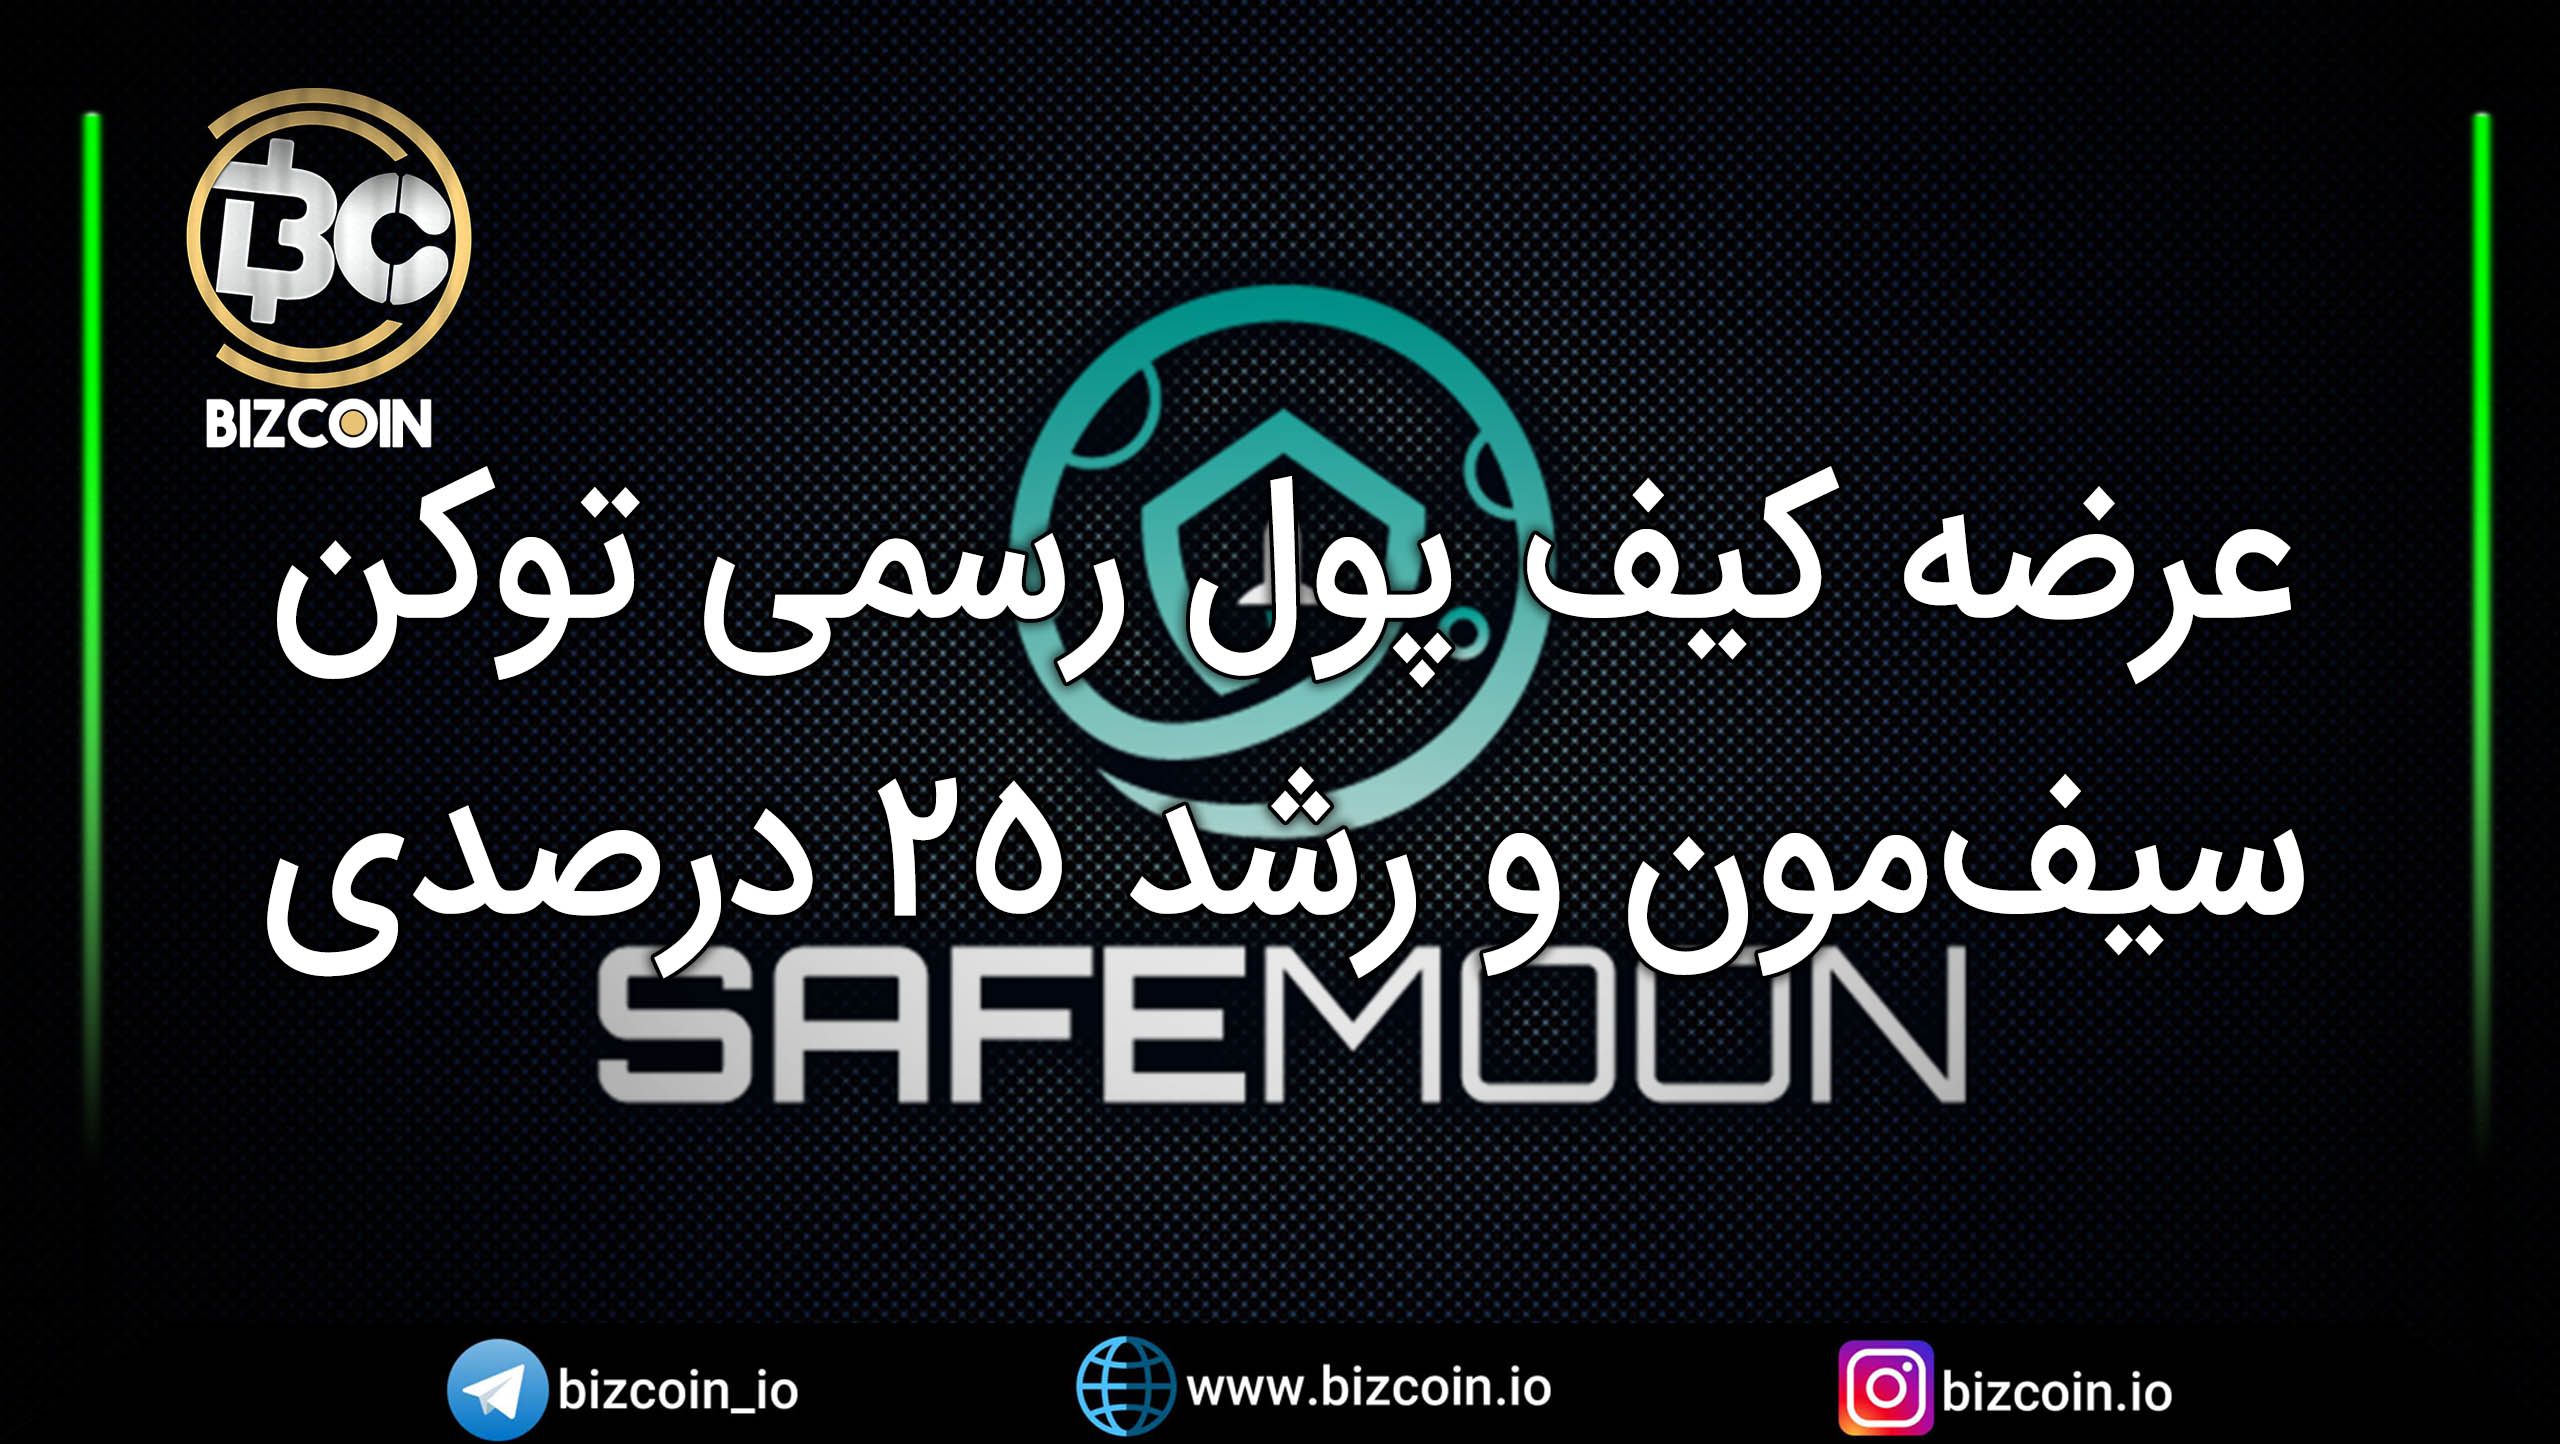 Supply of the official wallet of safemoon token and 25 growth of this token عرضه کیف پول رسمی توکن سیفمون و رشد ۲۵ درصدی